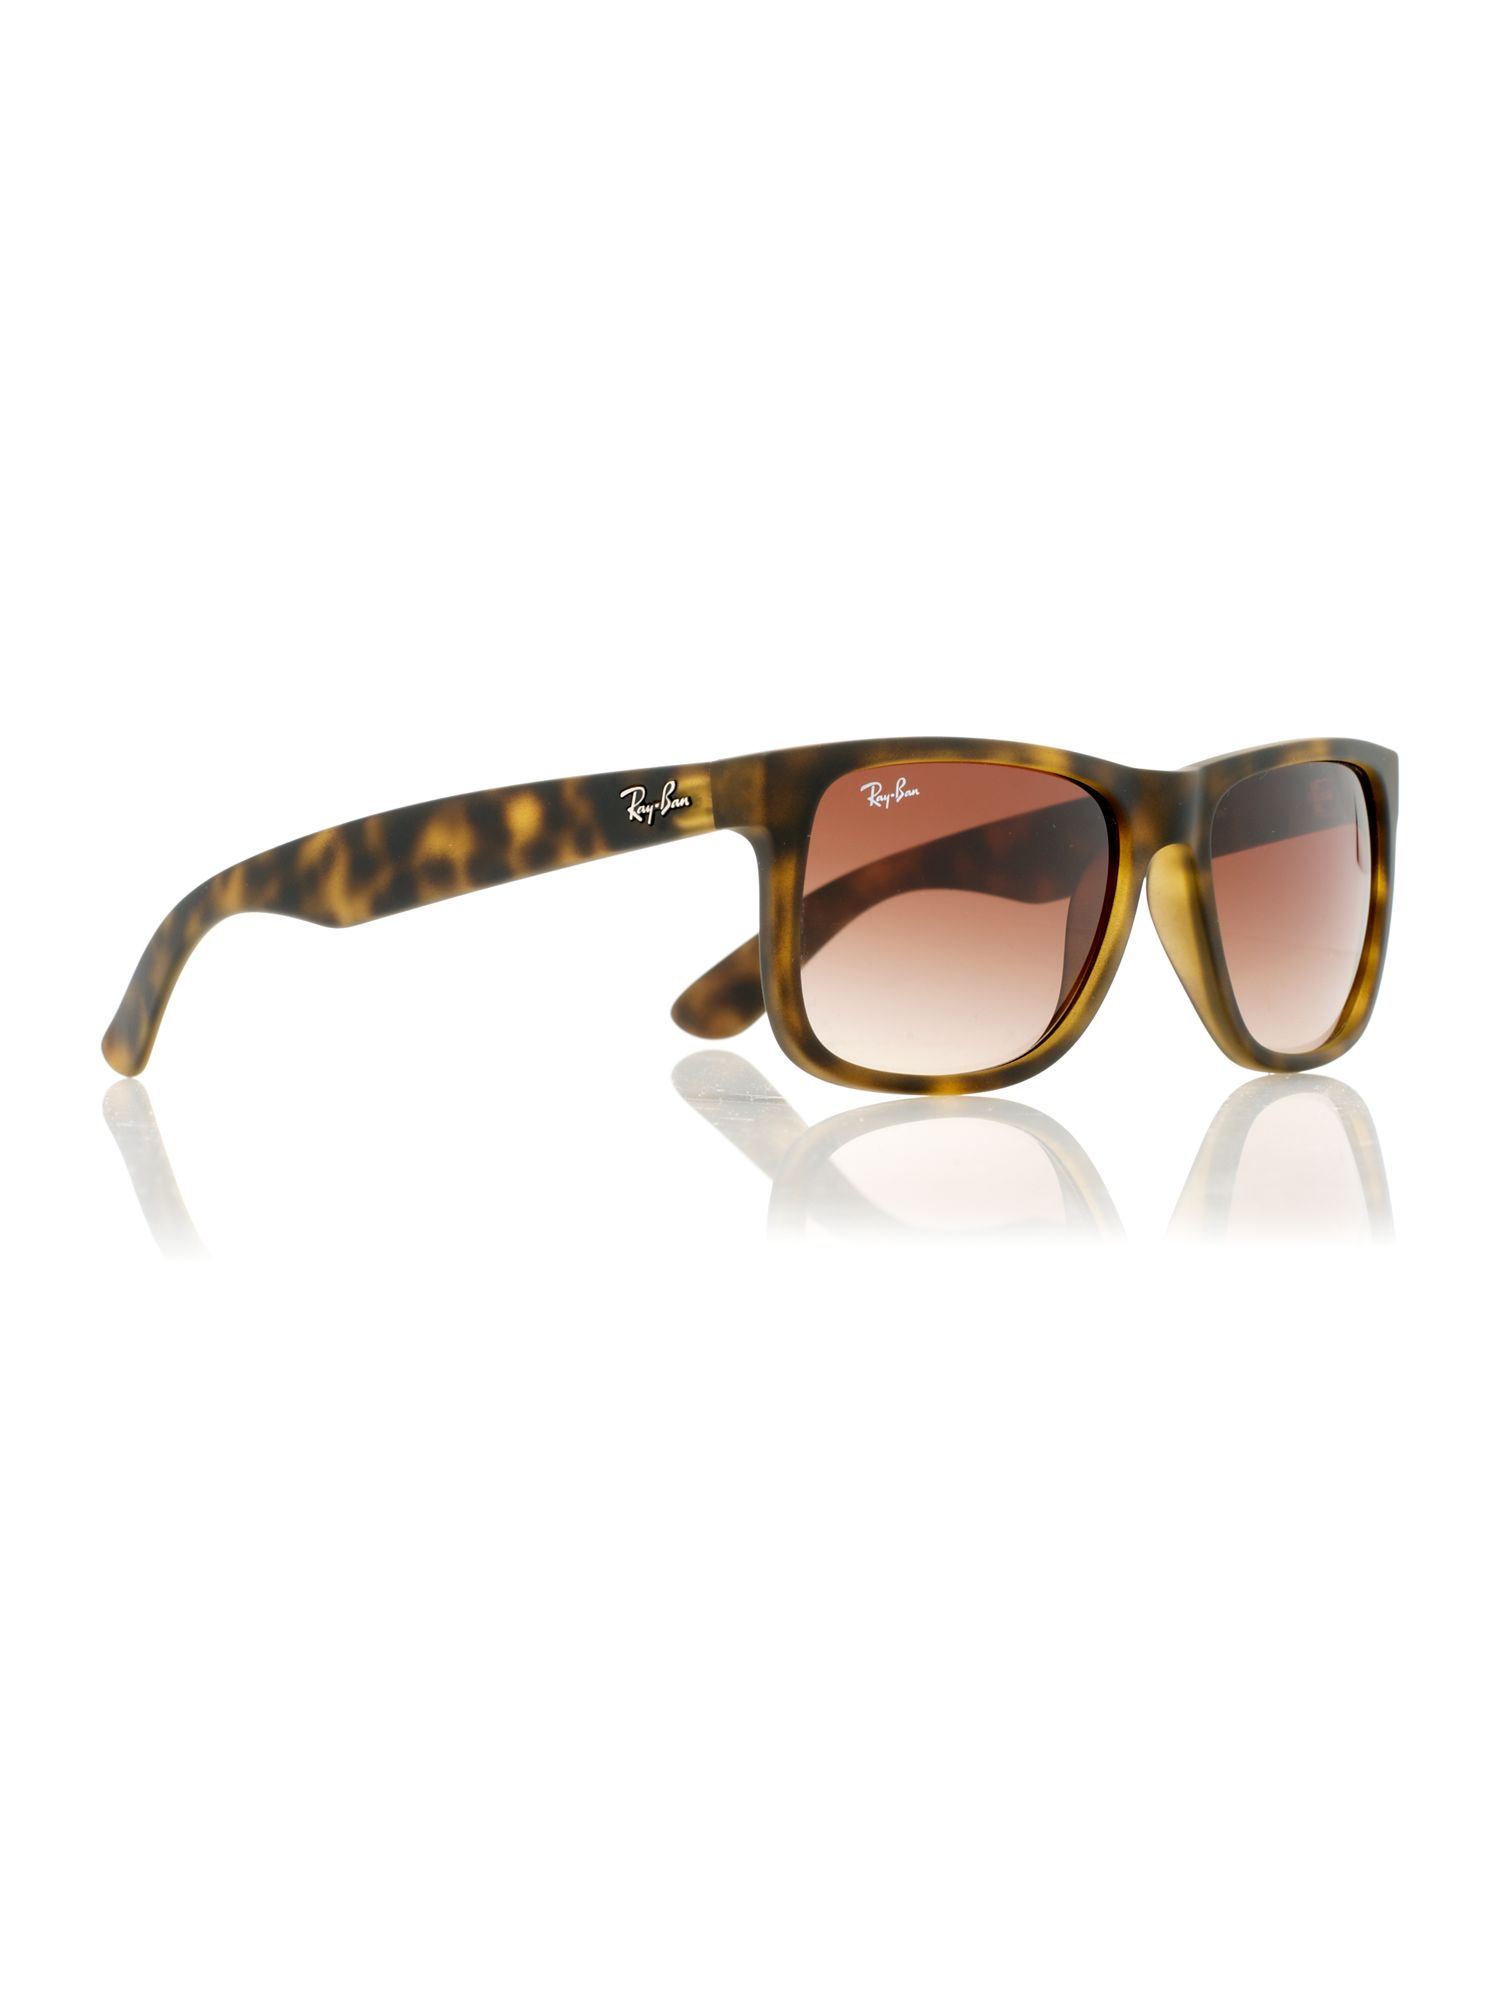 Unisex RB4165 Justin rectangle sunglasses